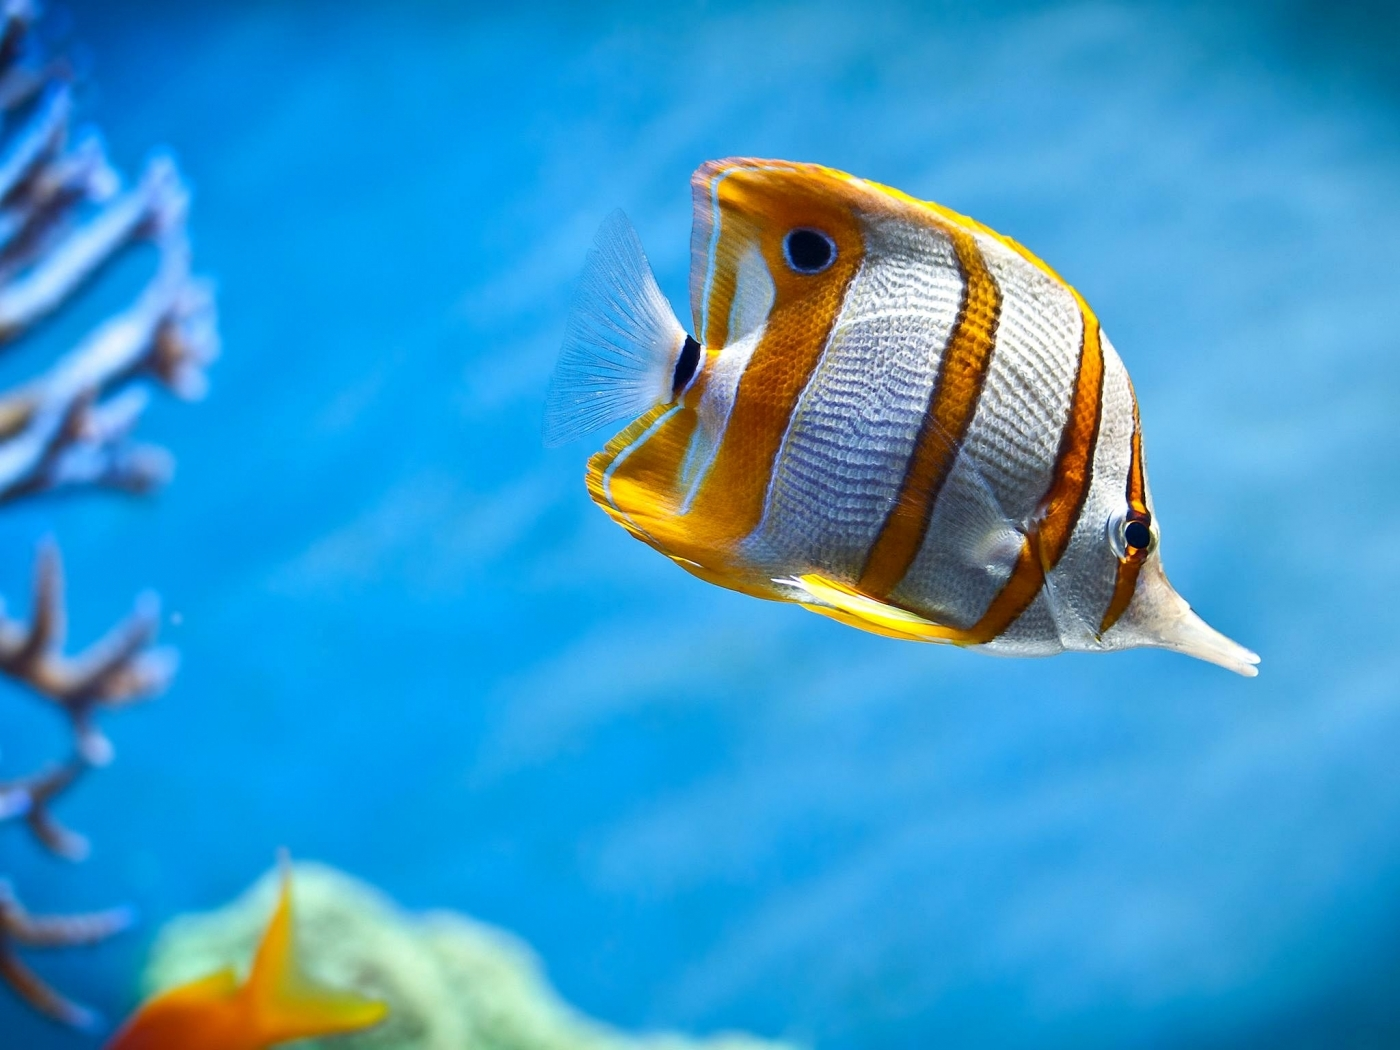 31739 download wallpaper Animals, Fishes screensavers and pictures for free